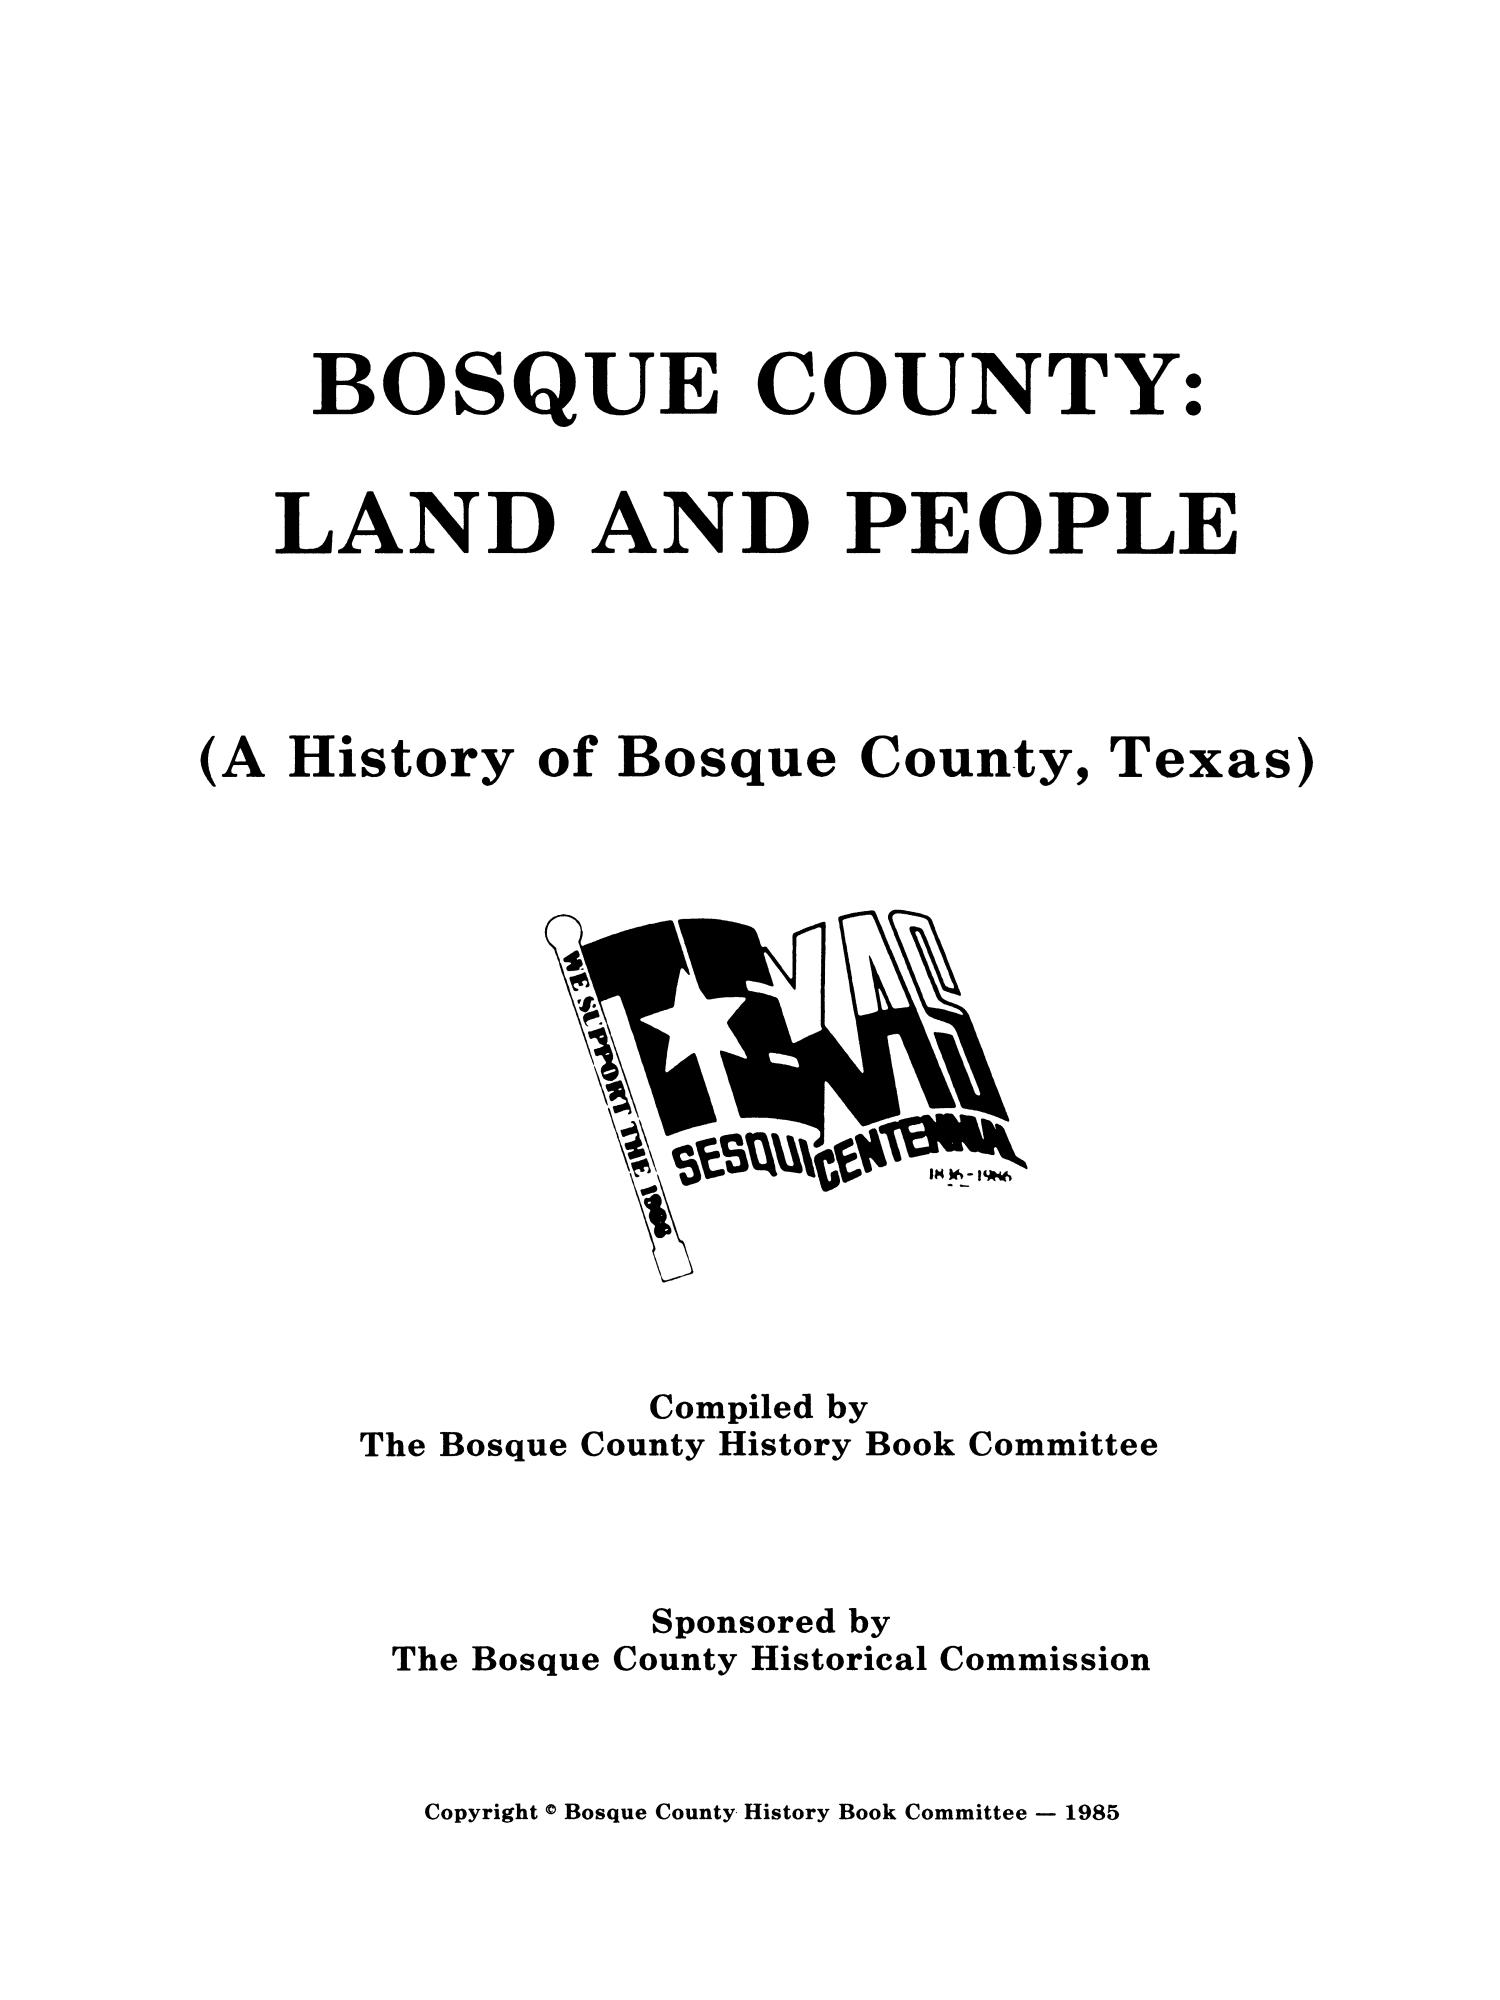 Bosque County: Land and People (A History of Bosque County, Texas)                                                                                                      Title Page